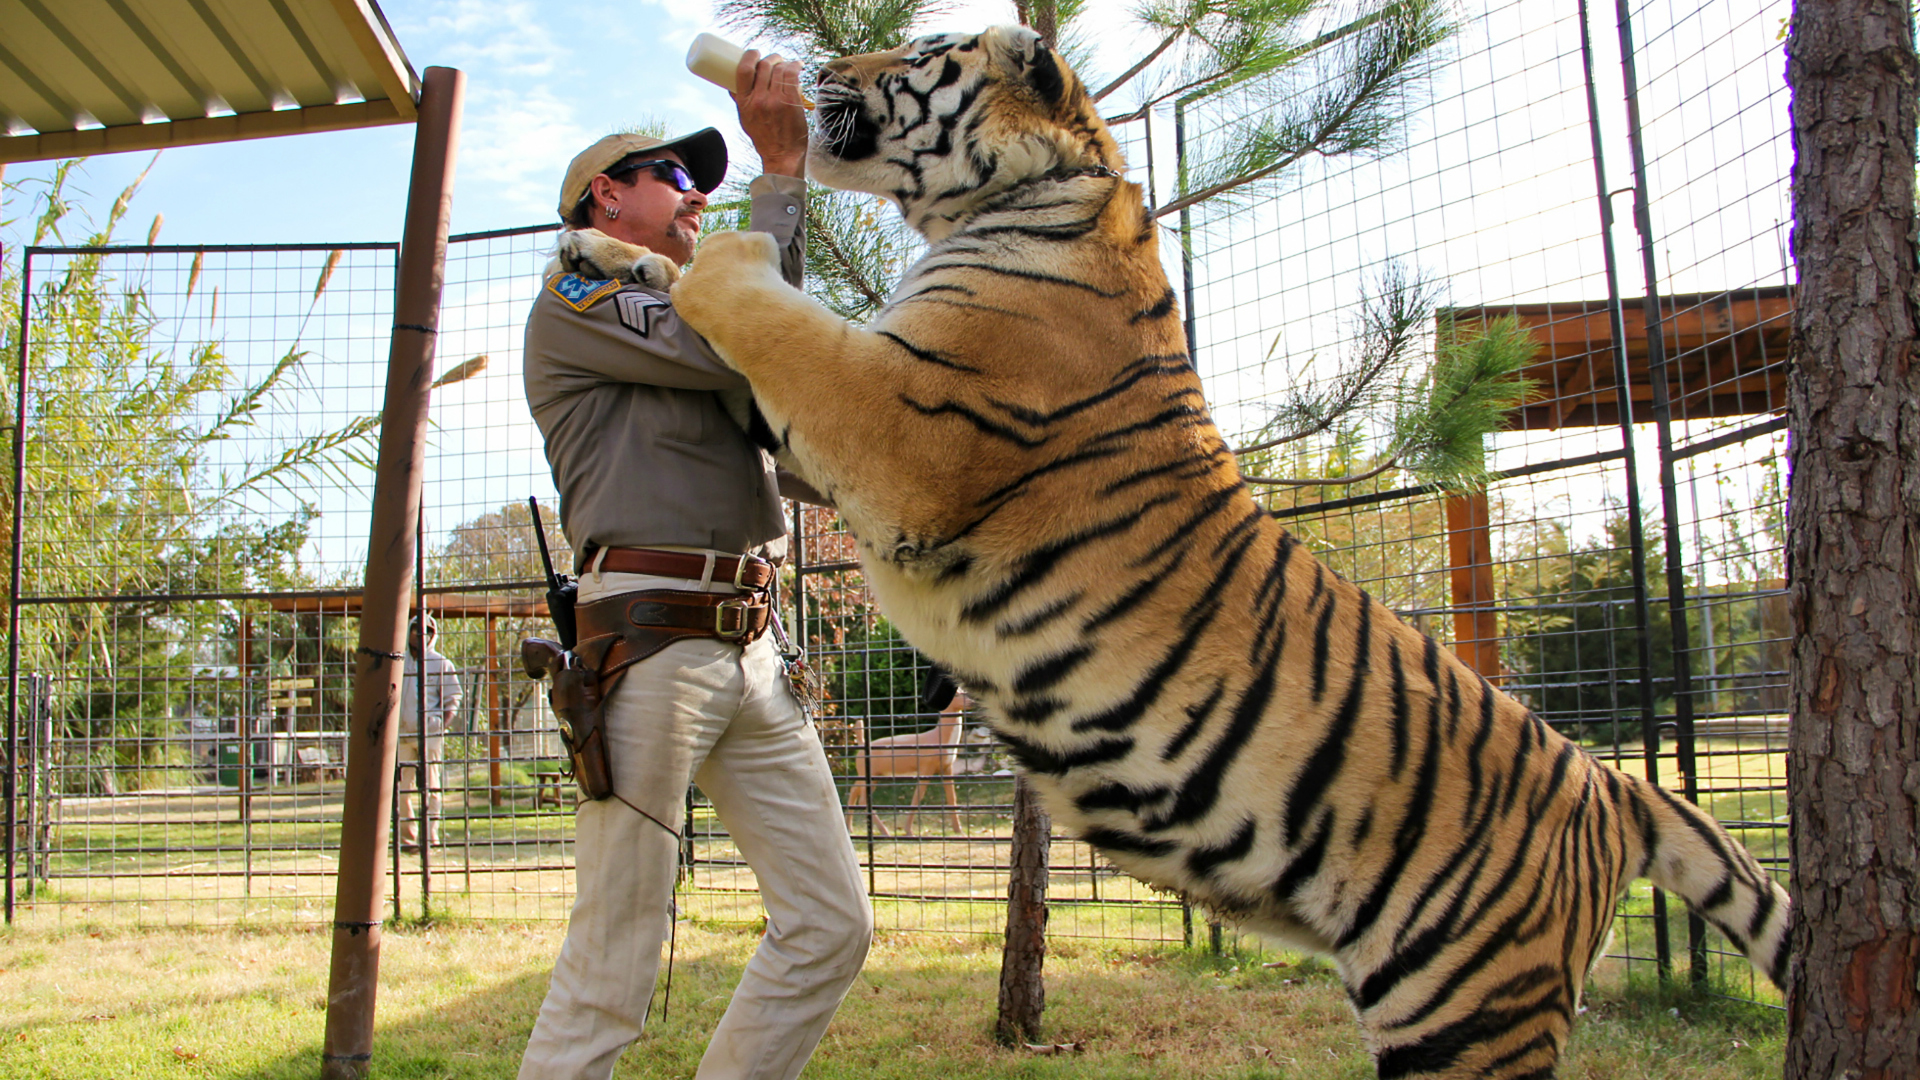 Joe Exotic's Husband, Dillon, Speaks Out About Life After 'Tiger King'